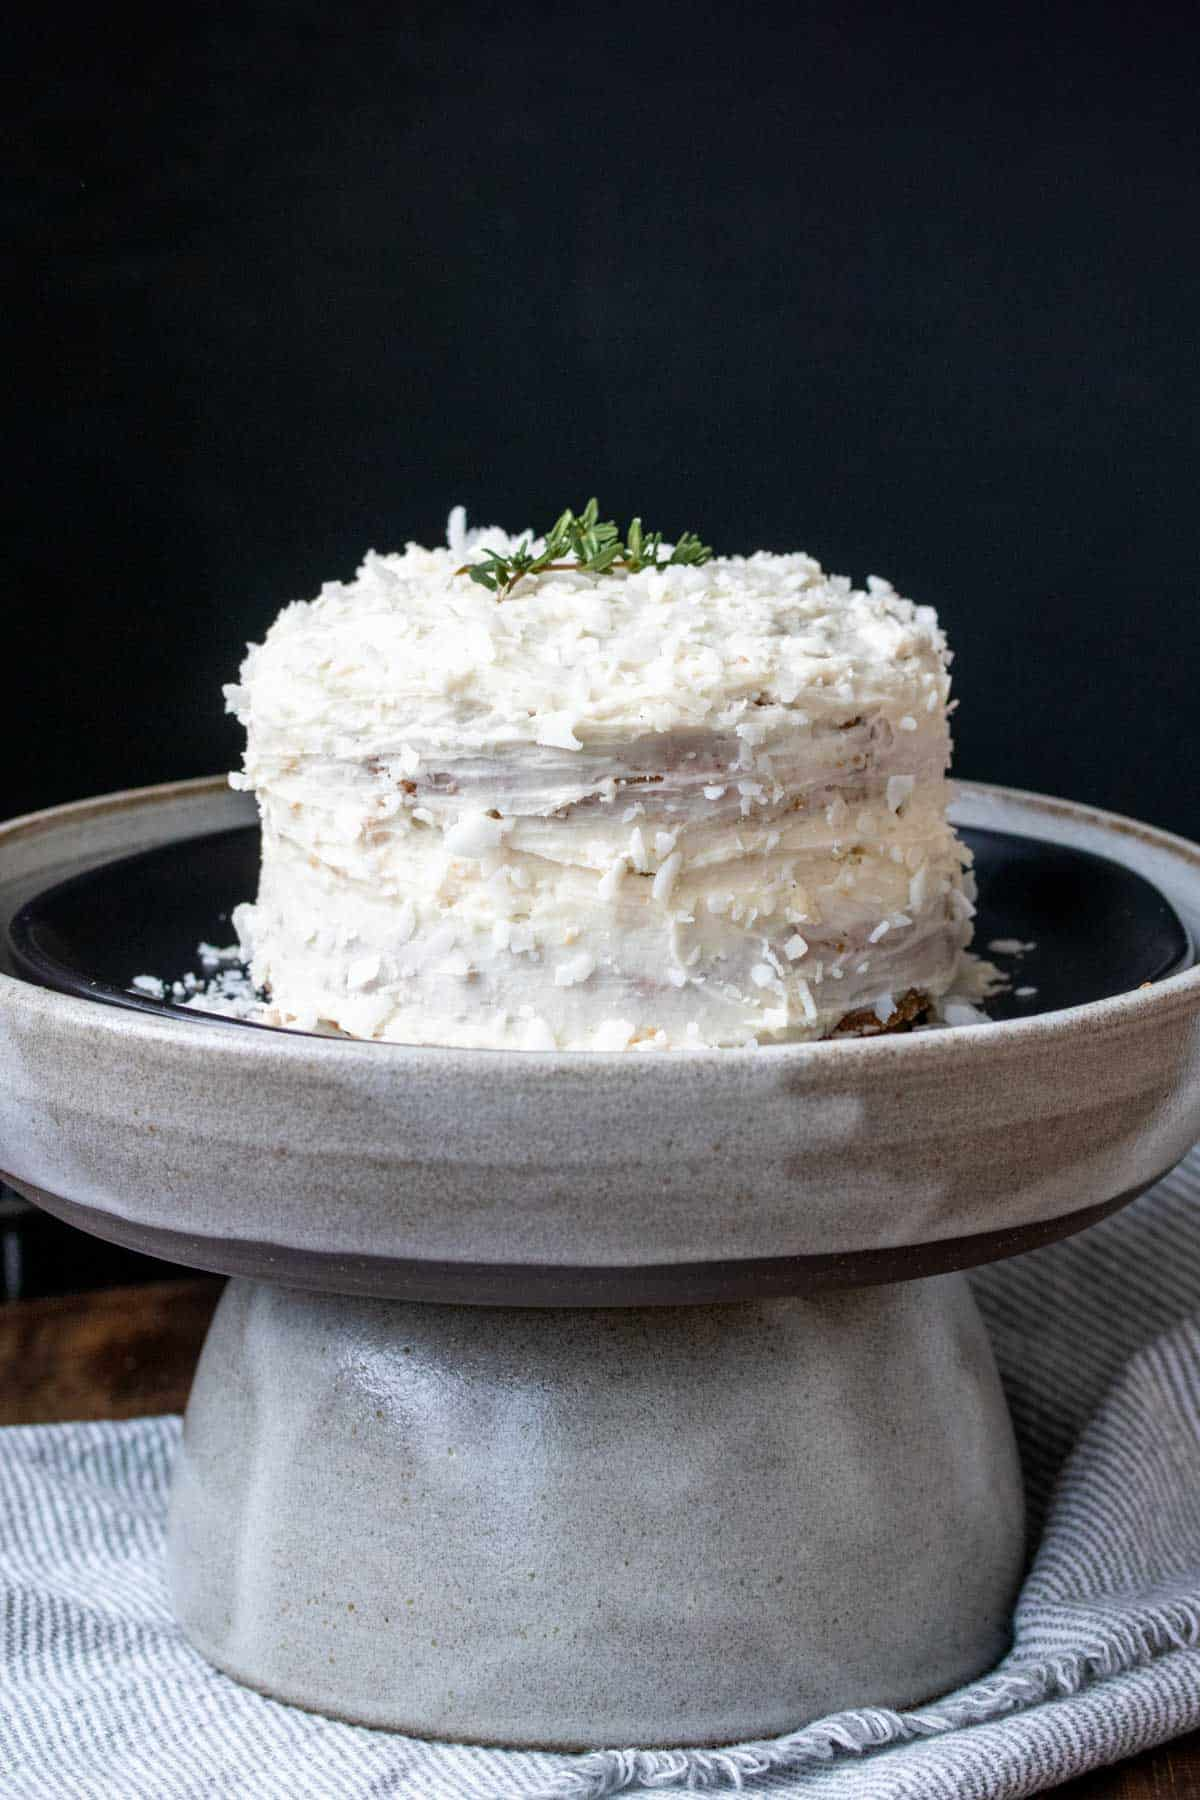 A two layer cake with white frosting on a black plate inside a grey plate